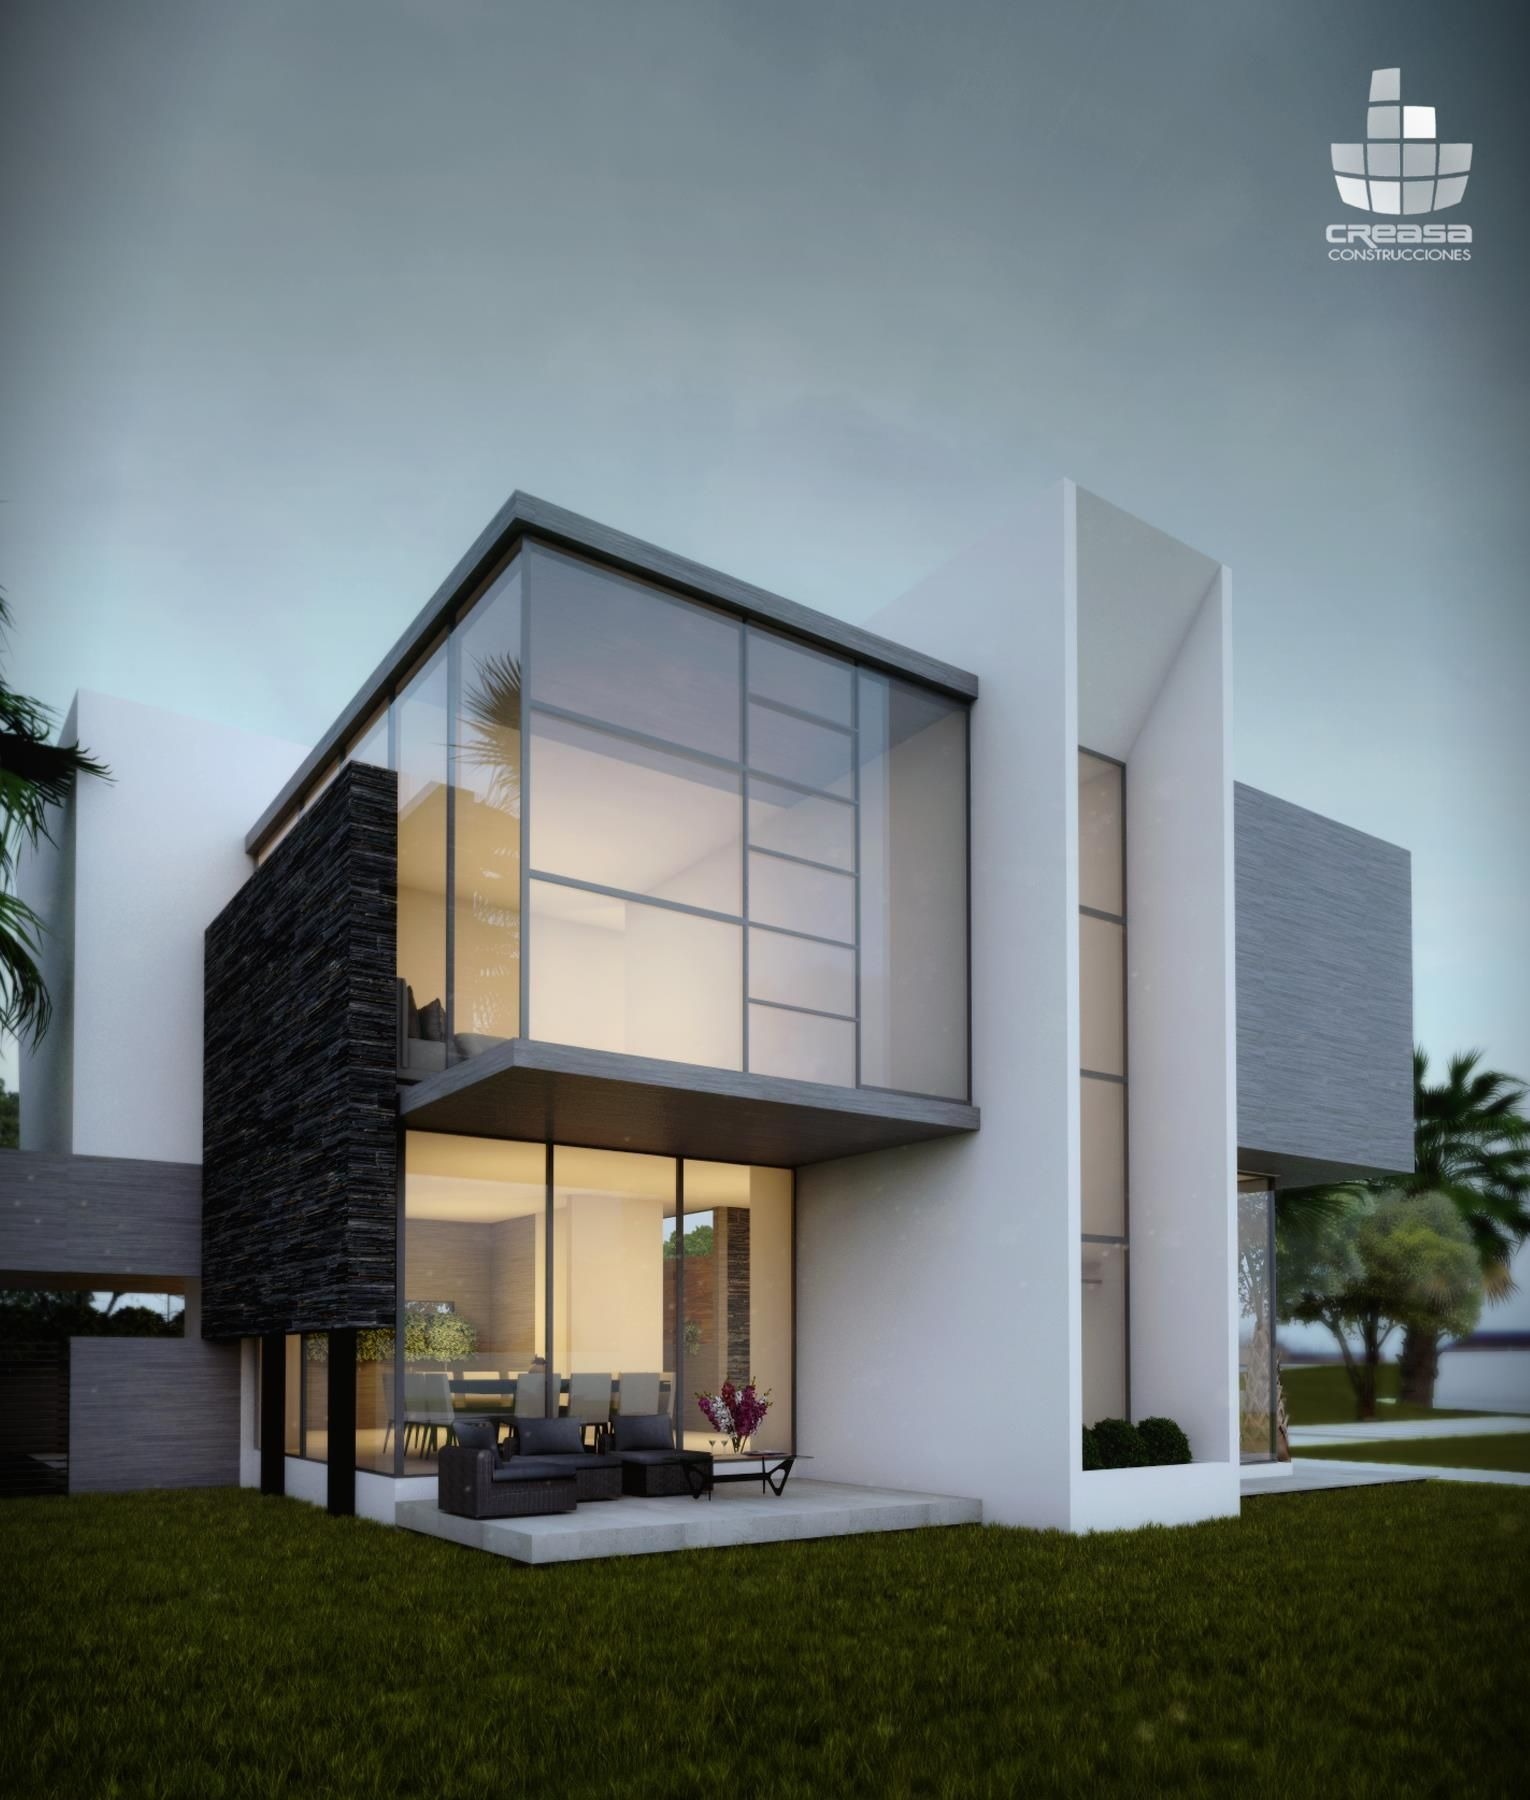 Creasa modern architecture pinterest villas house for Design architecture house